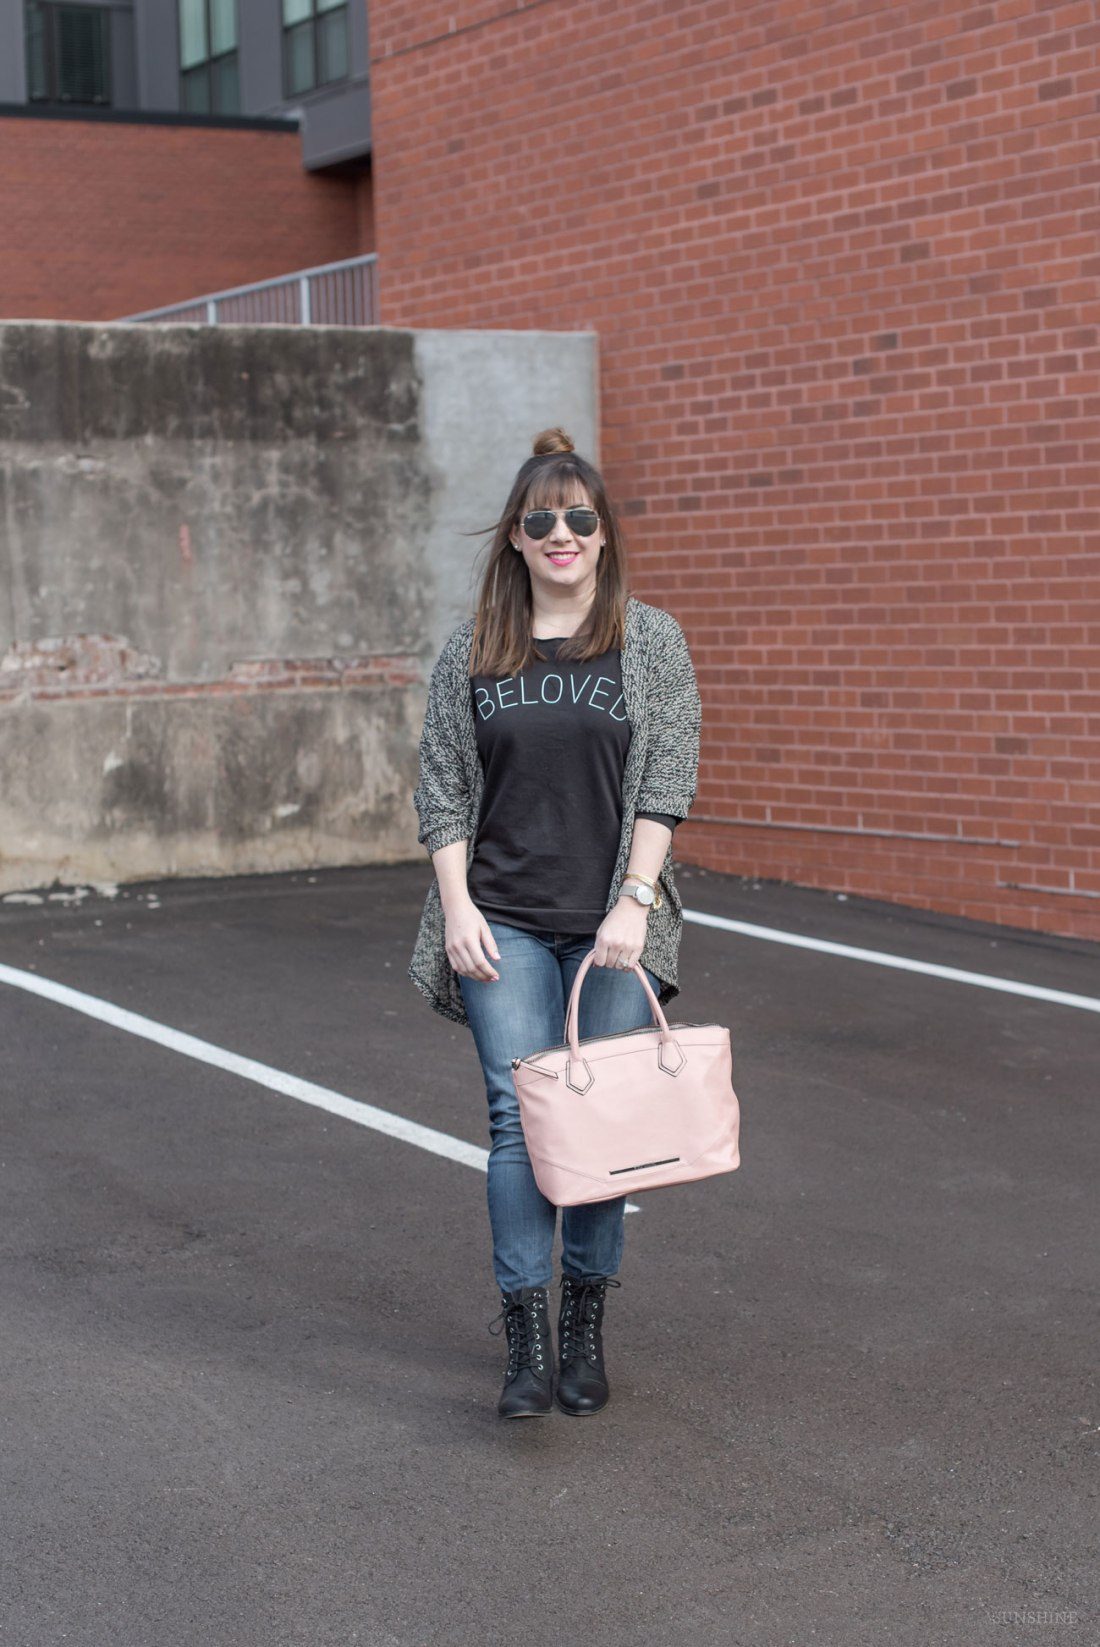 """Beloved"" Sweatshirt, Blush Steve Madden Bag, Hudson Jeans"